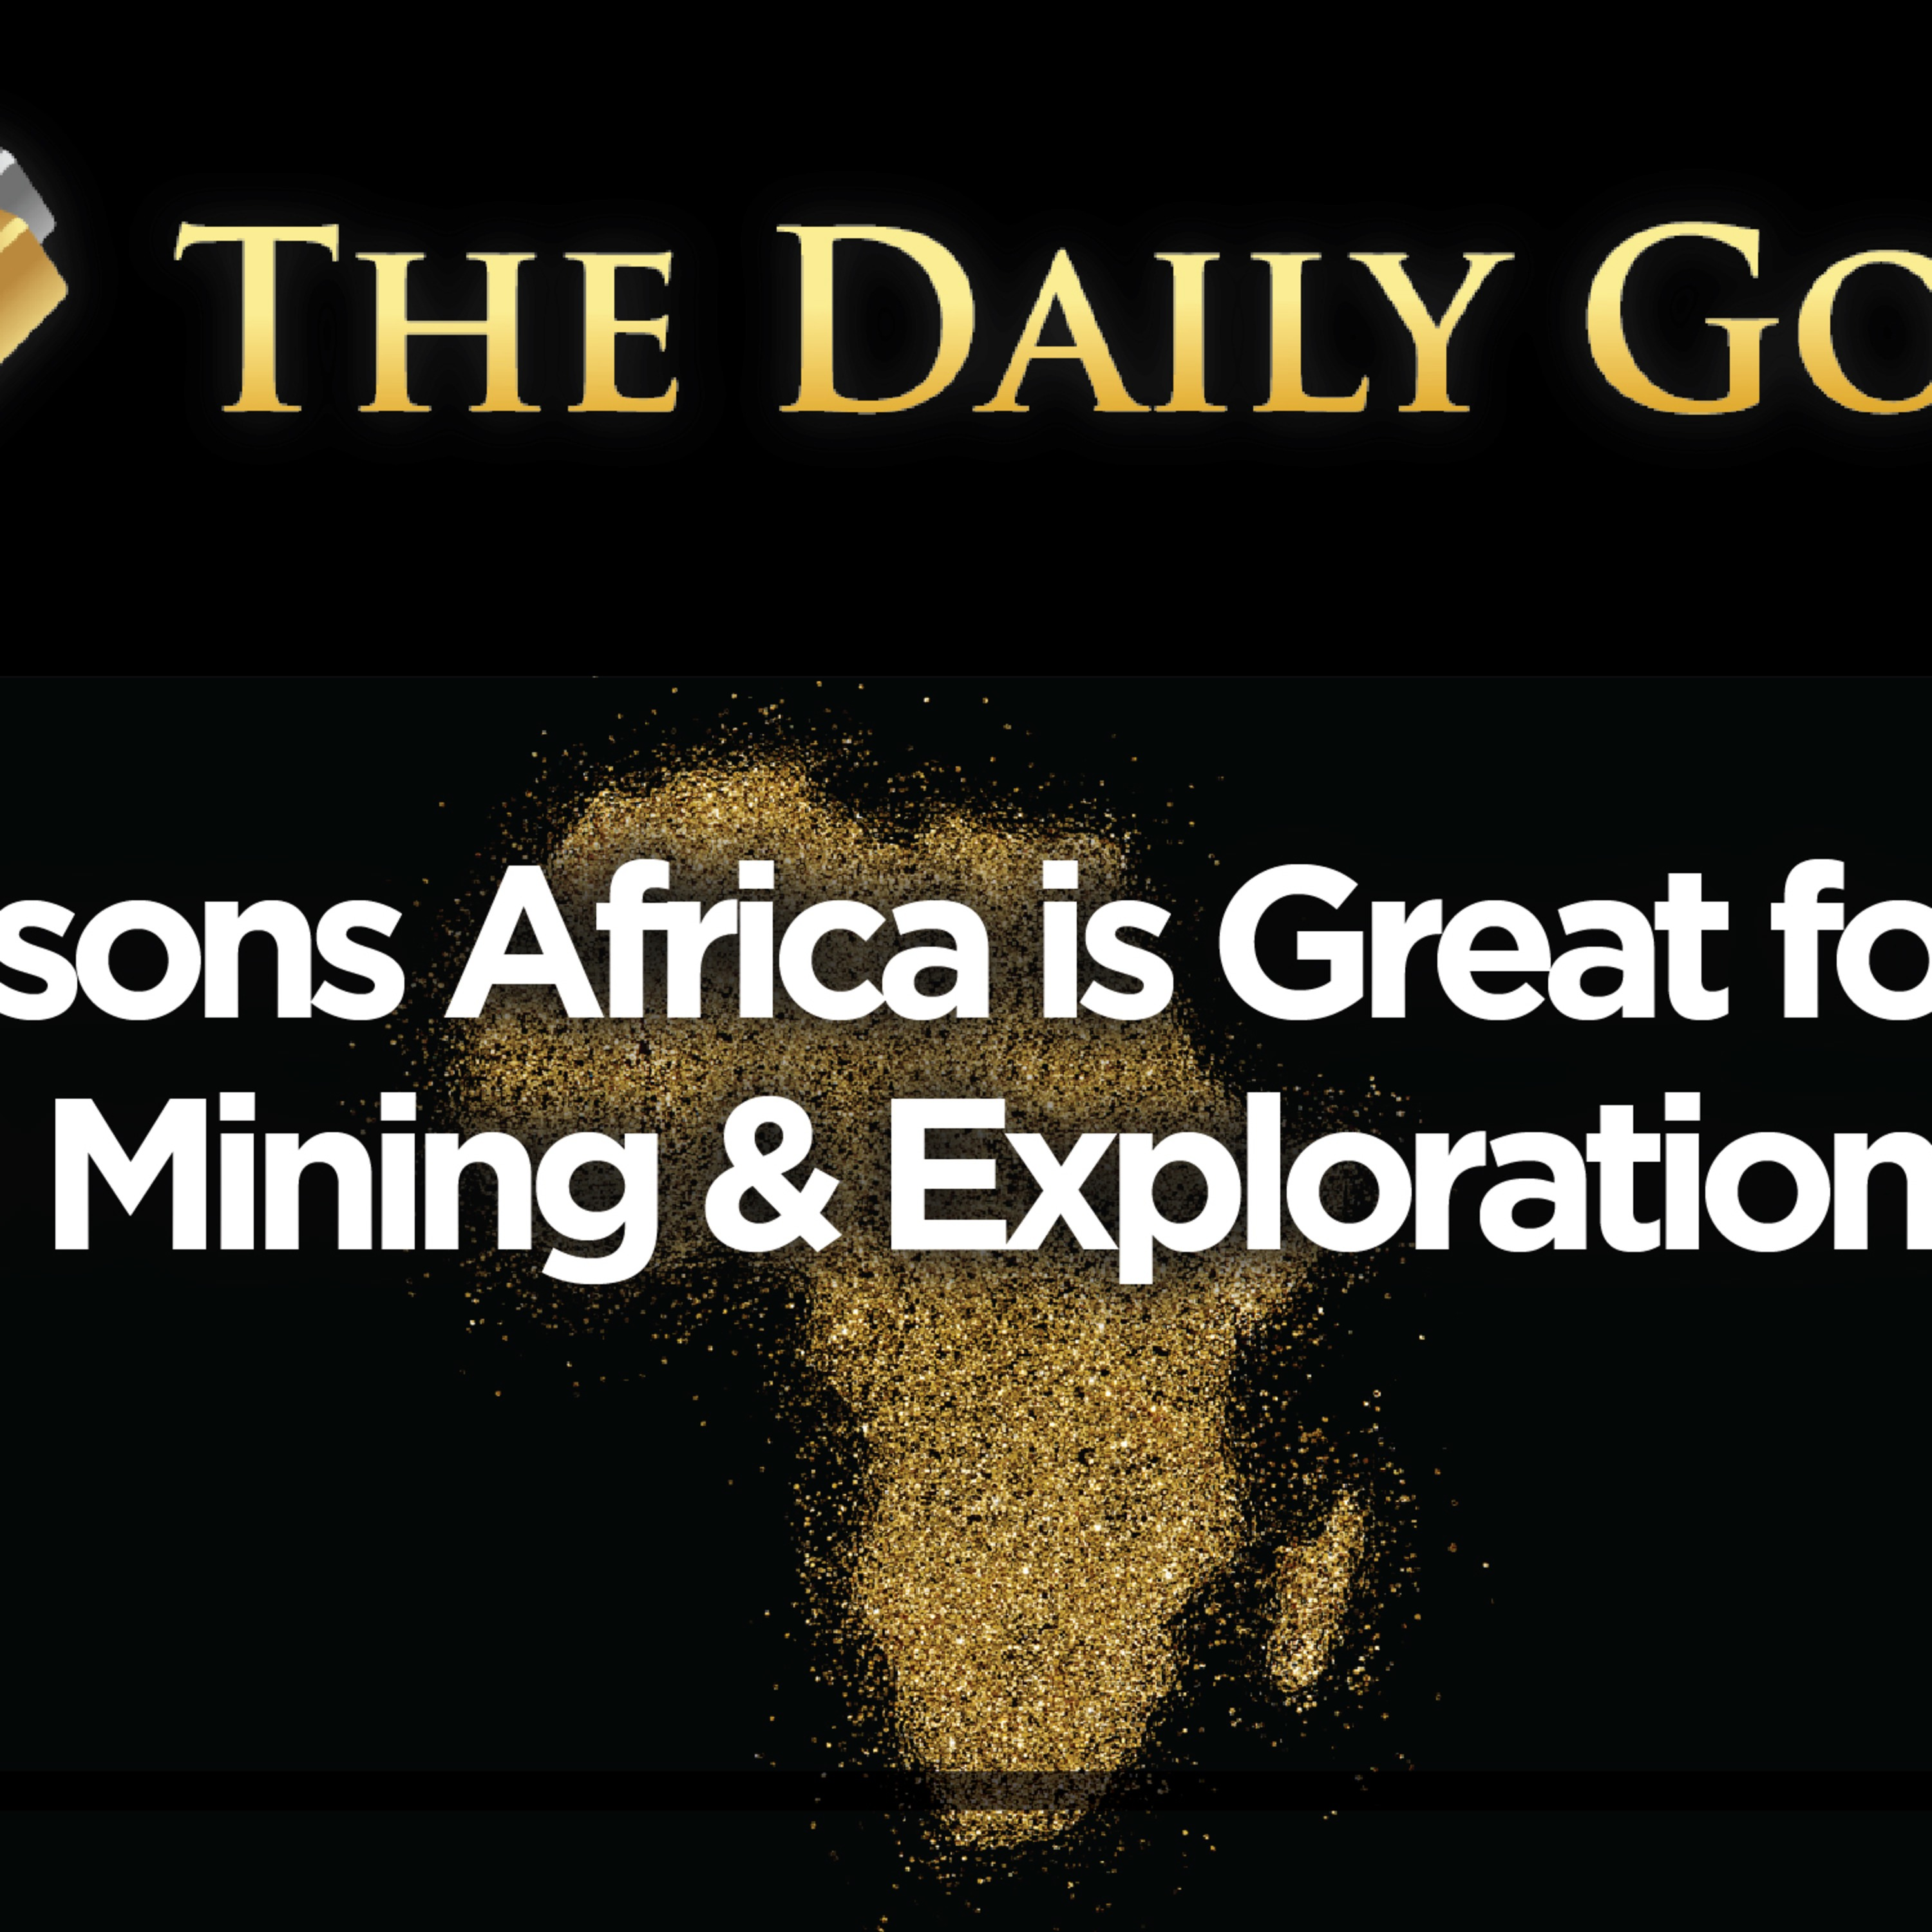 5 Reasons Africa is Great for Gold Mining & Gold Exploration